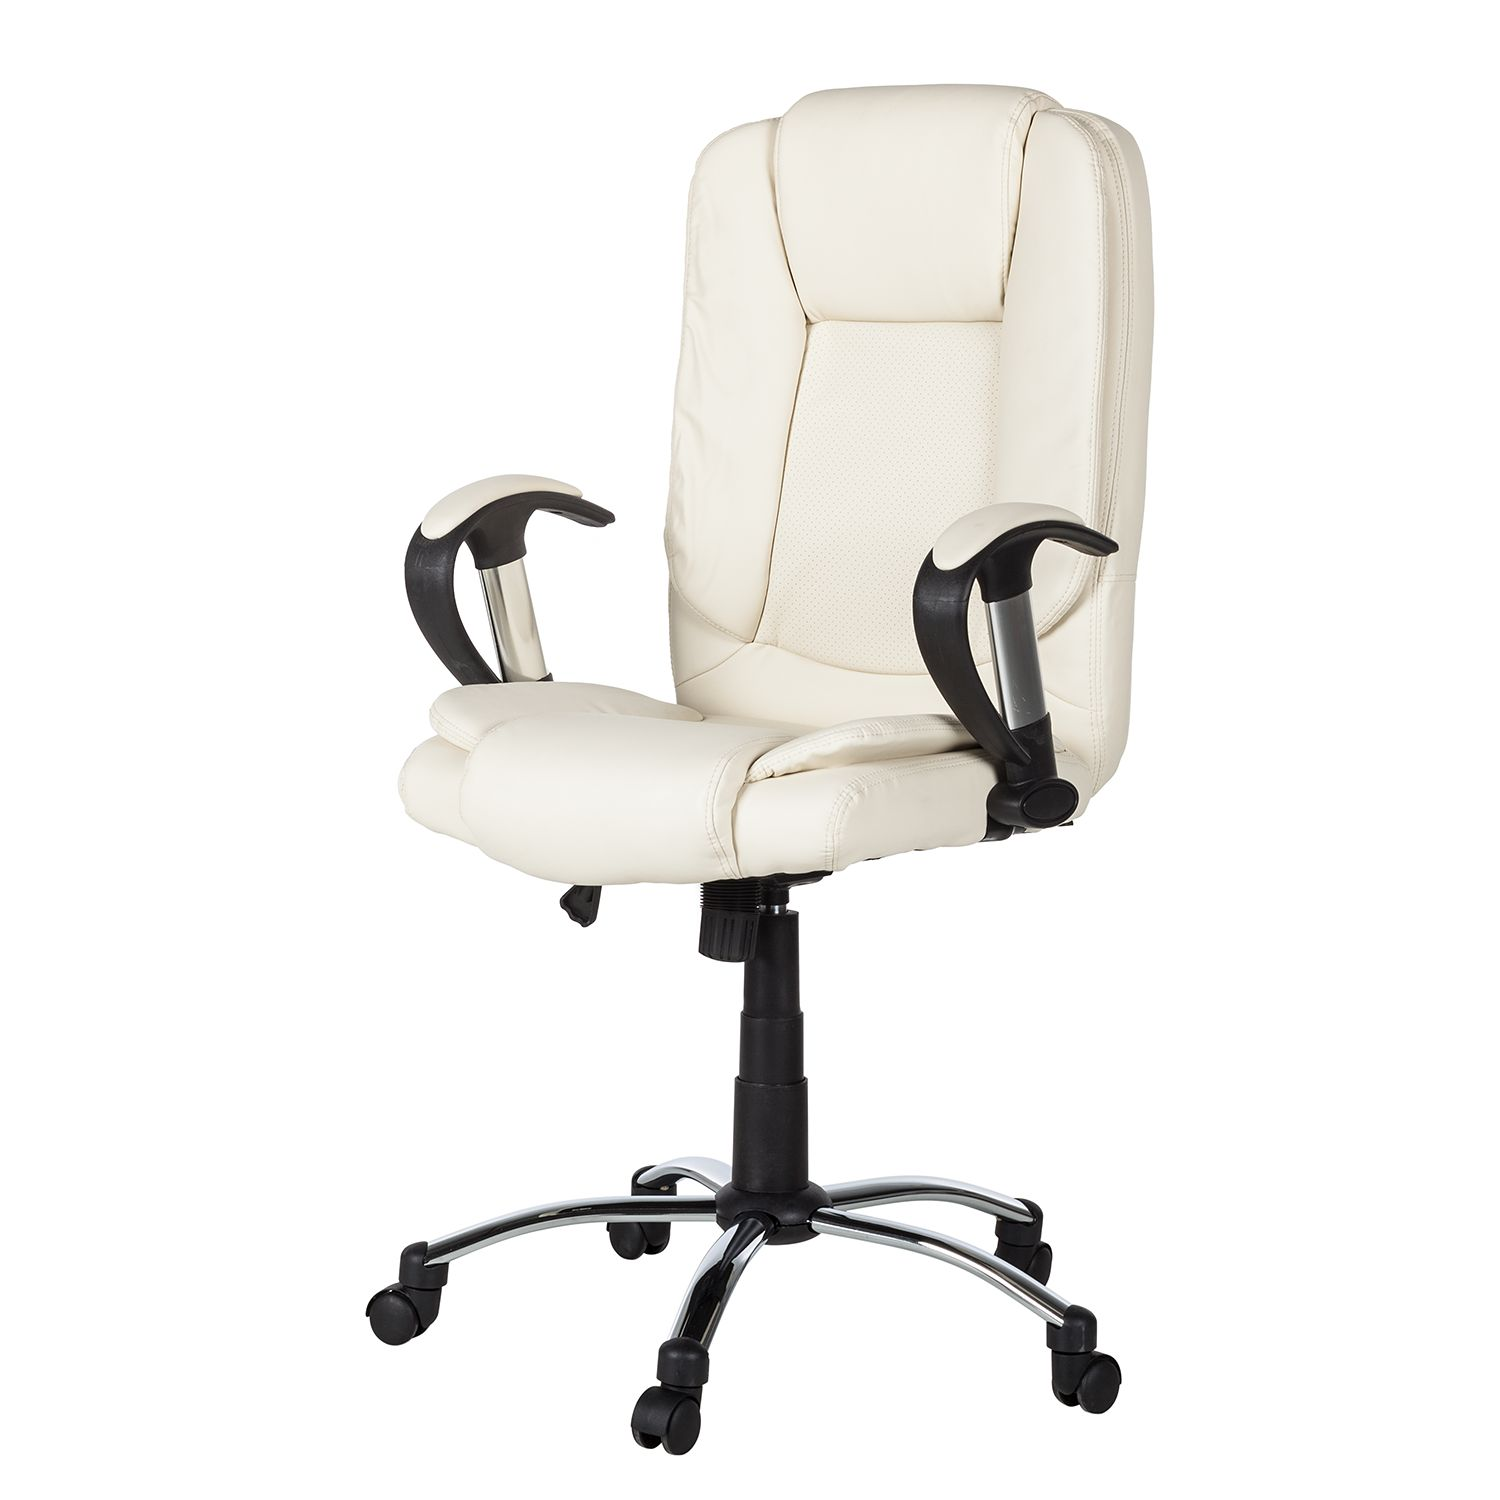 Chefsessel leder creme preisvergleiche for Home24 office